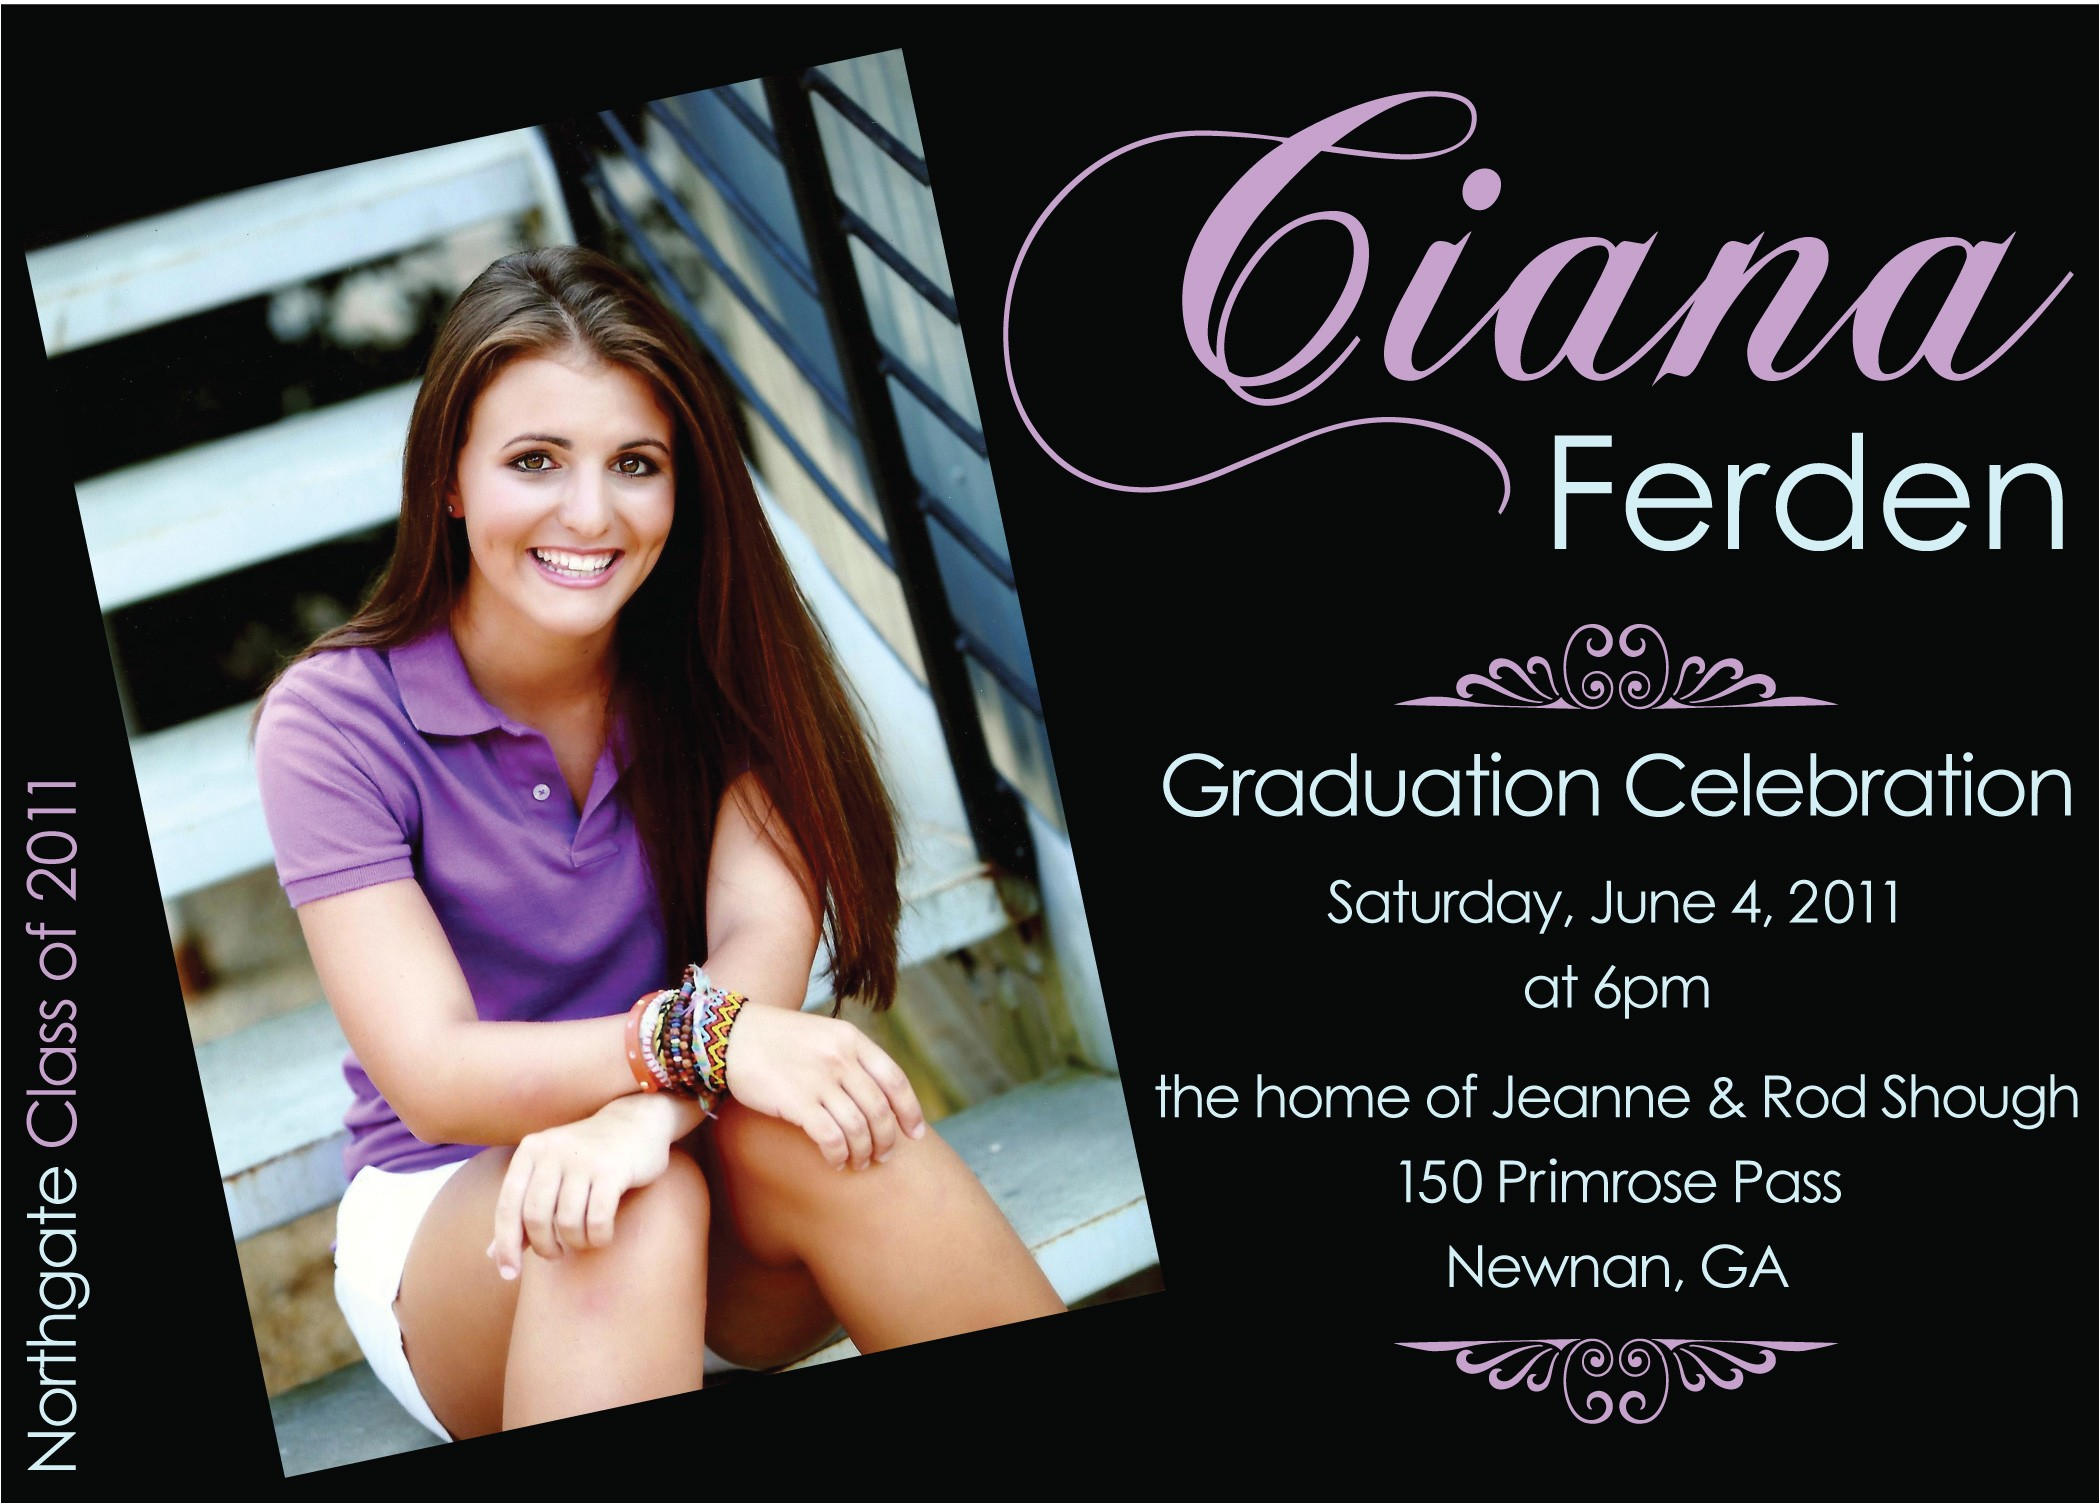 Graduation Invitation Layout Ideas Create Own Graduation Party Invitations Templates Free